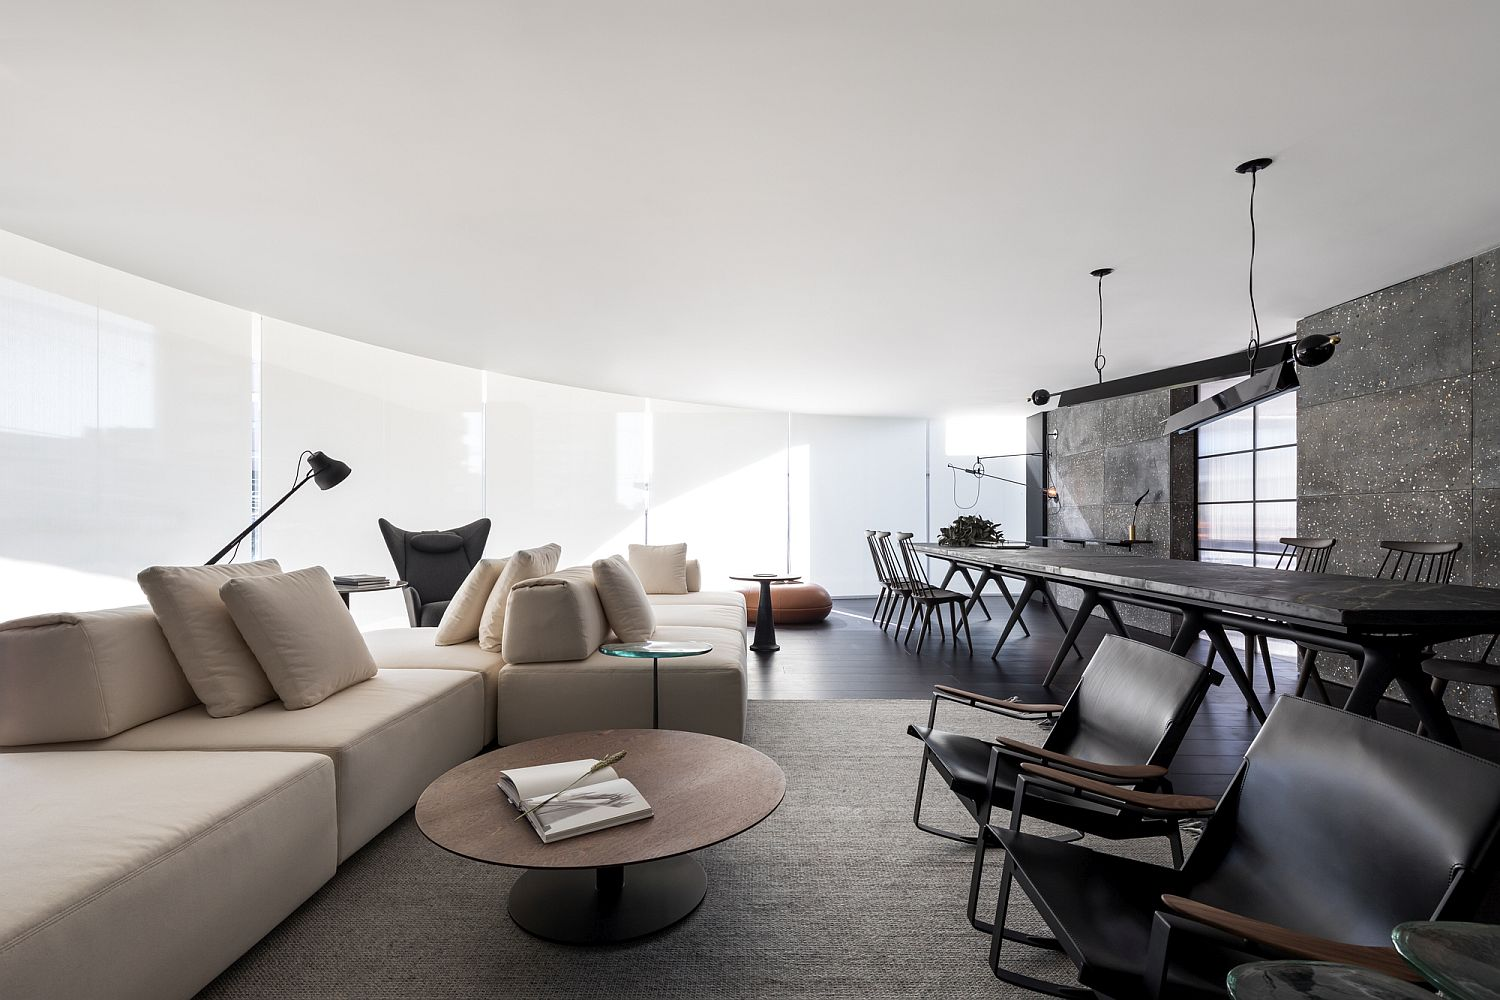 Casual living room sofa placement adds to its style